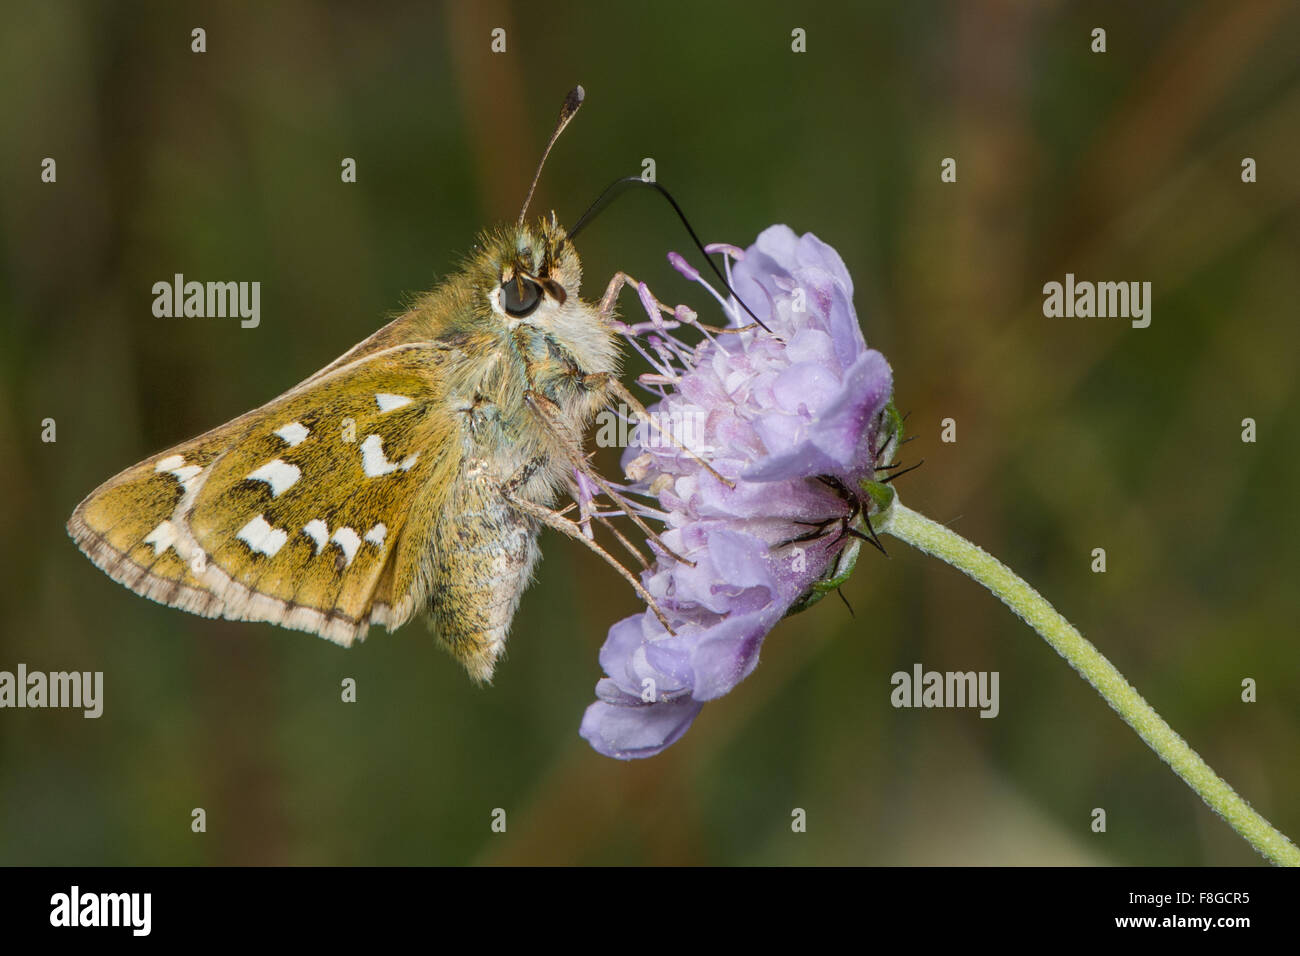 Silver-spotted skipper (Hesperia comma) nectaring on scabious Stock Photo